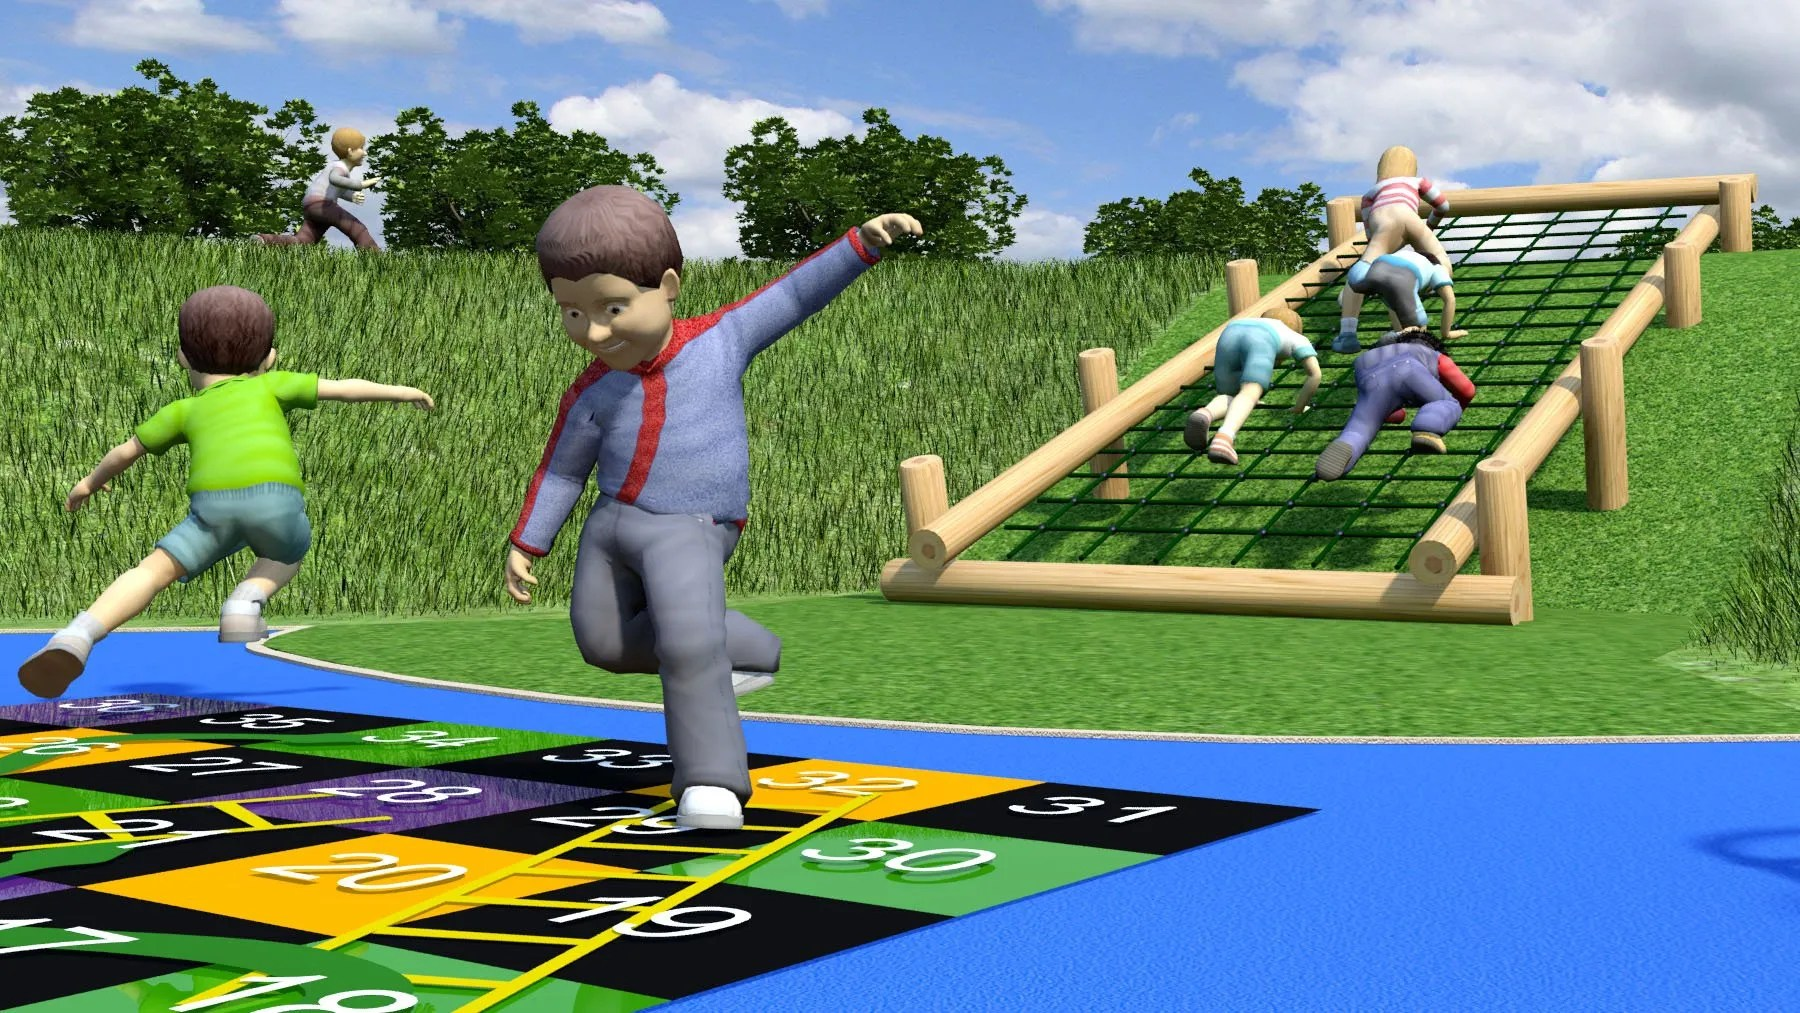 Hillsborough Park Children's Playground Upgrades: Embankment Climbing Frame